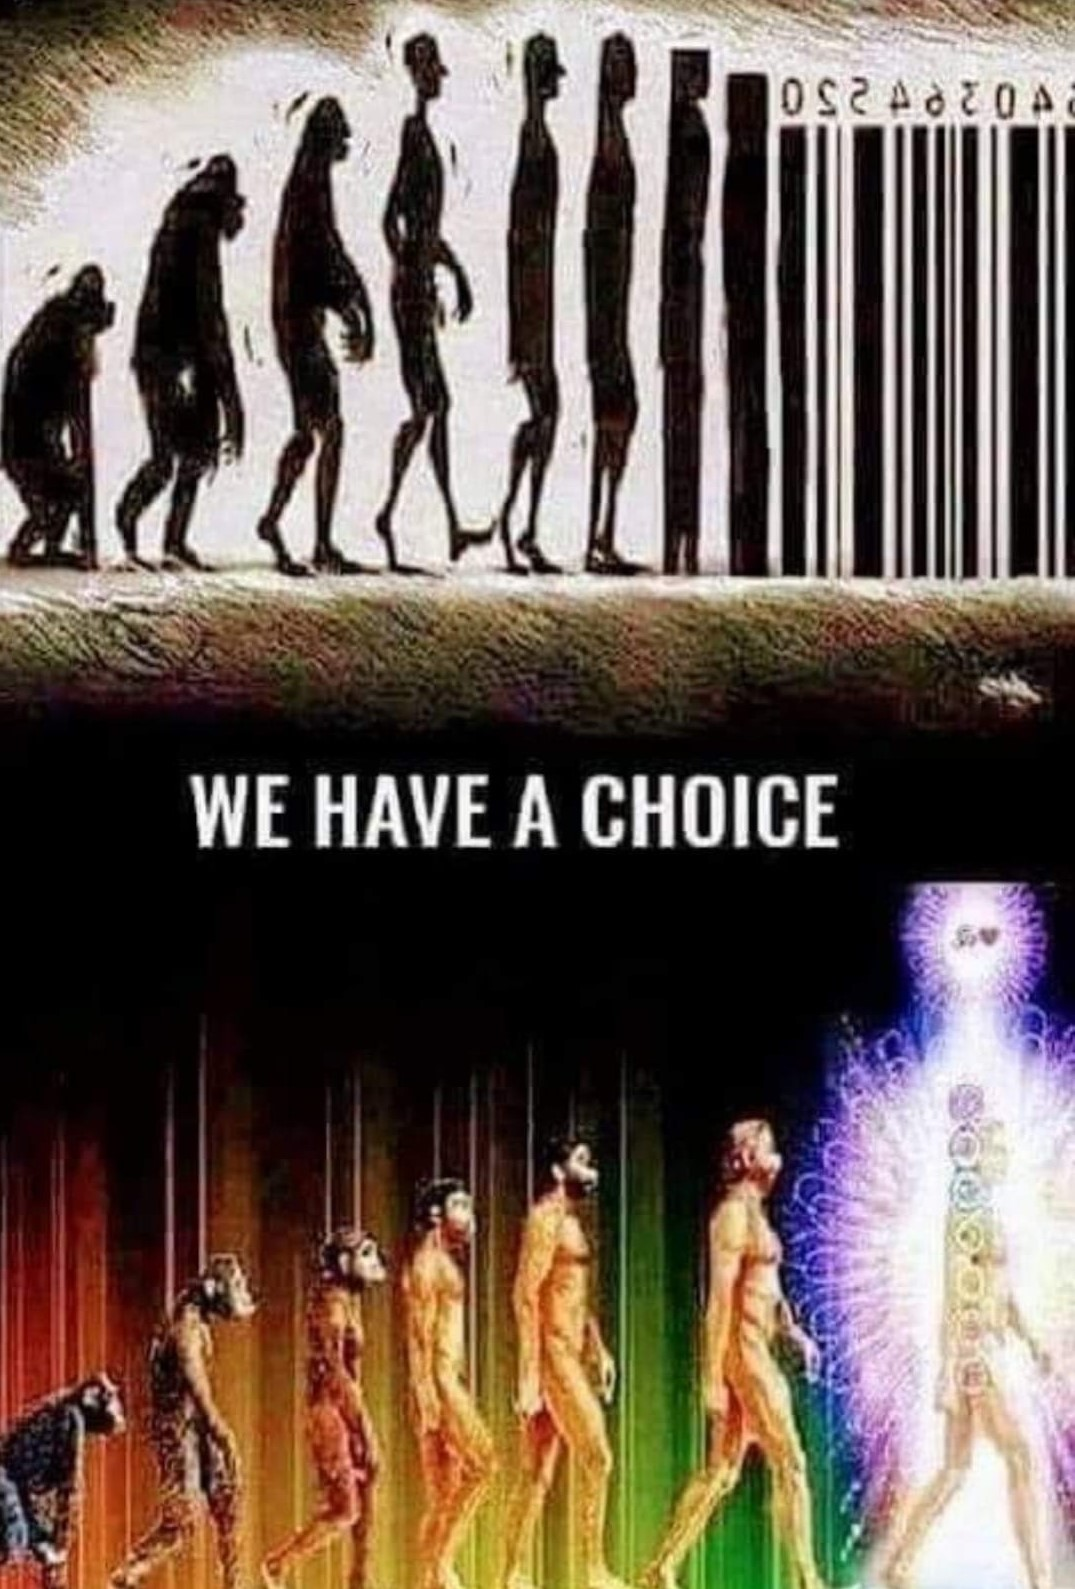 We have a choice